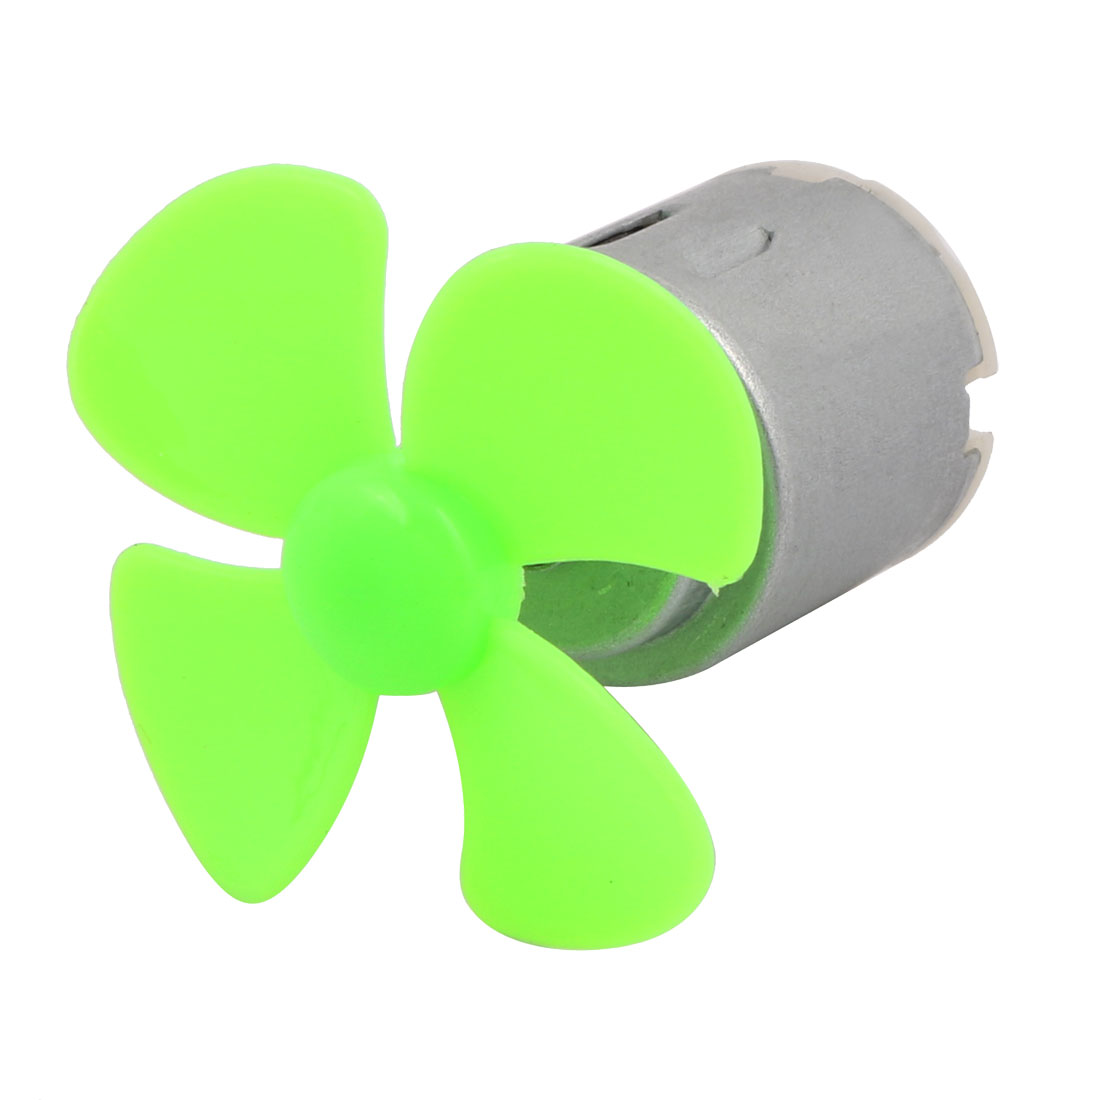 DC 3V 0.13A 11000RPM Strong Force Motor 4 Blades 40mm Green Propeller for RC Aircraft